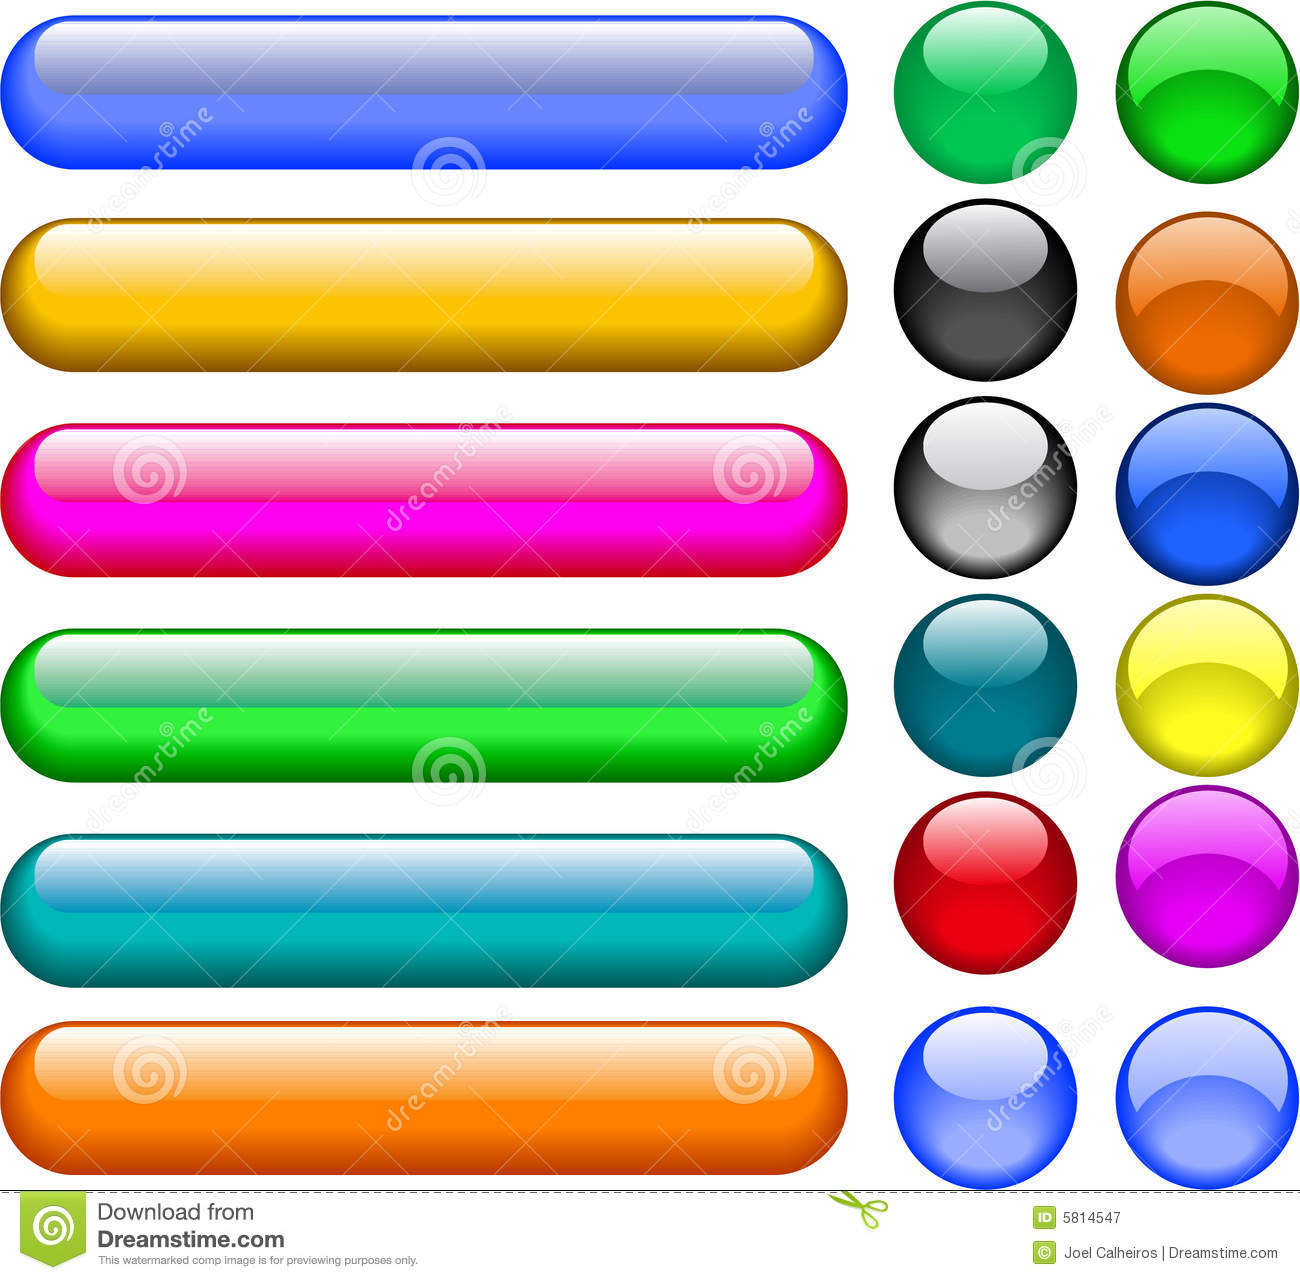 Popular Vector Buttons Royalty Free Stock Photography - Image: 5814547